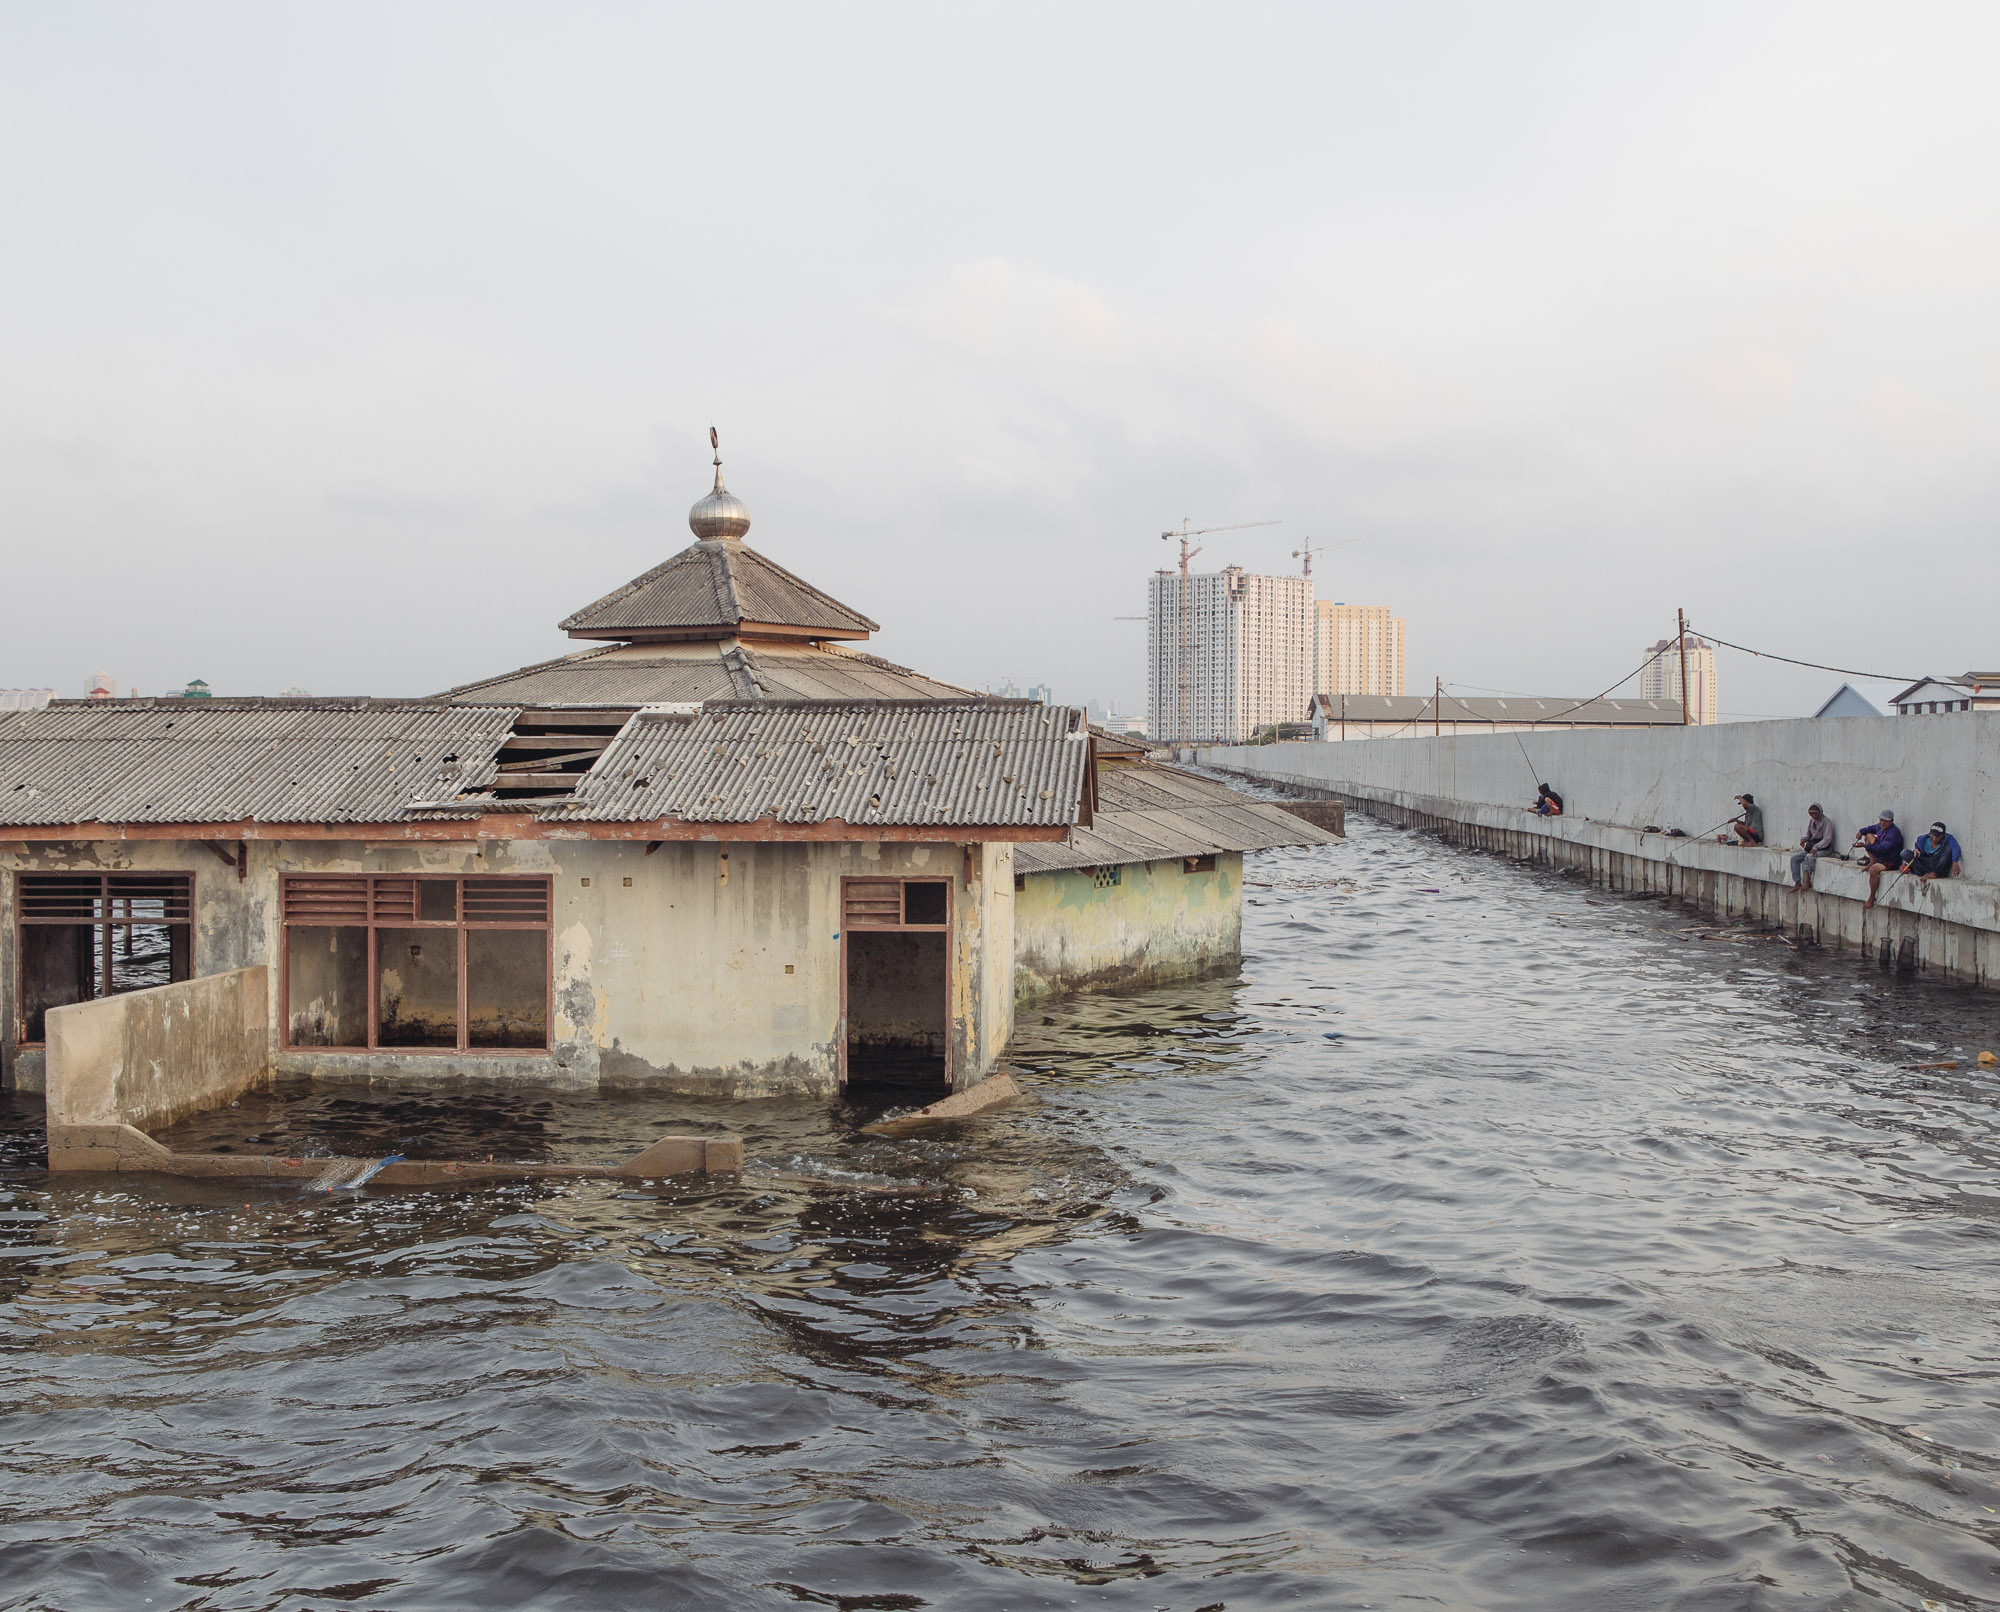 An abandoned mosque outside the sea wall in Muara Baru, North Jakarta, drowns in high water levels. Jakarta is sinking as a result of massive groundwater extraction. – and Muara Baru, one of the worst-sinking parts of the city, is already located below the sea level. (Photo by Muhammad Fadli/GroundTruth)